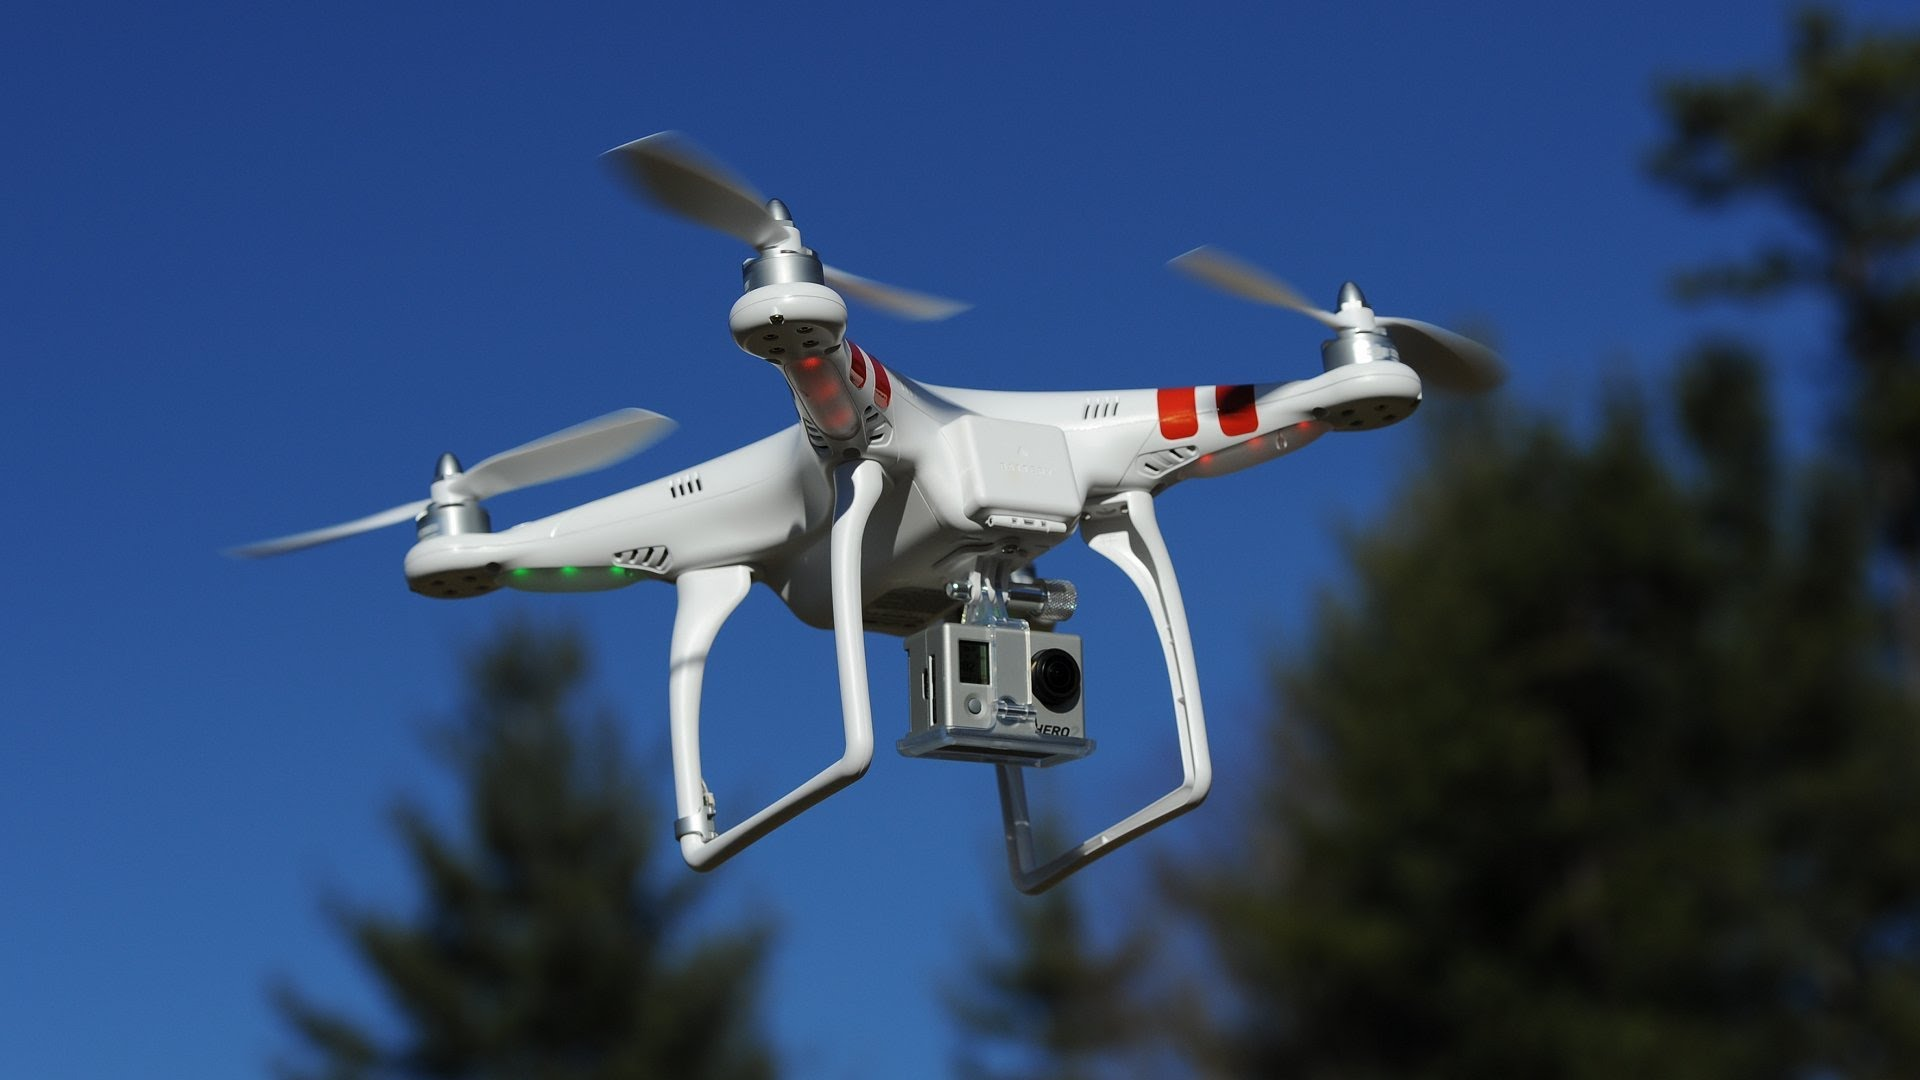 drone flying toy with Drone Photography Outlawed on Lego Hero Factory 3 0 Pics additionally Watch in addition 360 Vr Photo From Top Of Eiffel Tower together with Syma X5uw 720p Wifi Fpv 2mp Camera Altitude Hold Drone also Rc Flying Speeder Bike Star Wars.